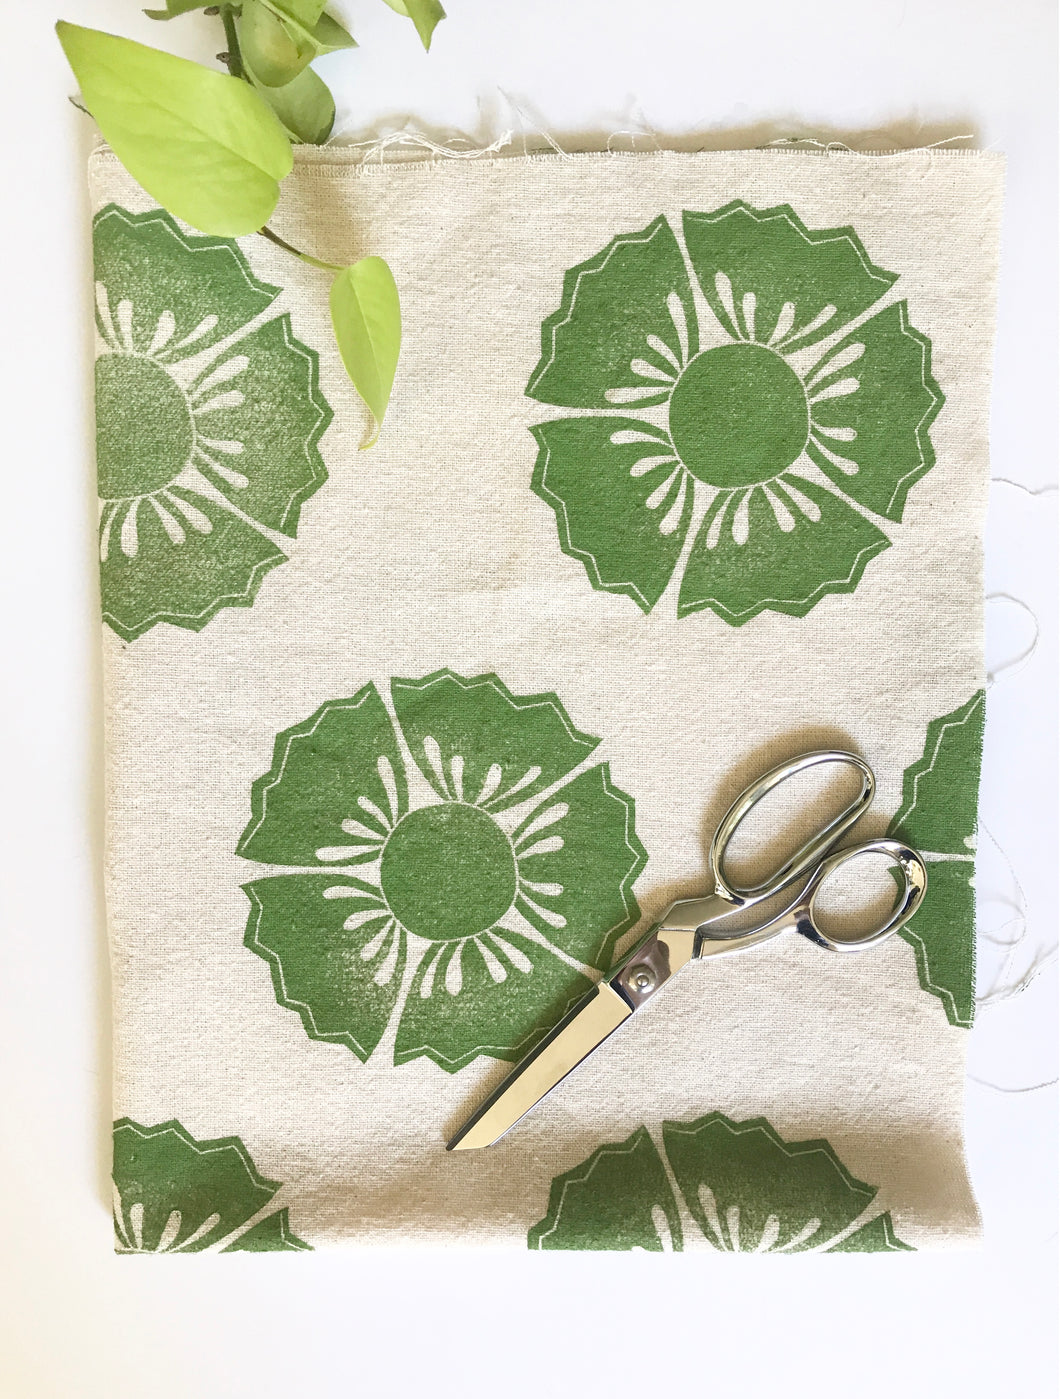 Large floral print in green on 100% cotton fabric.